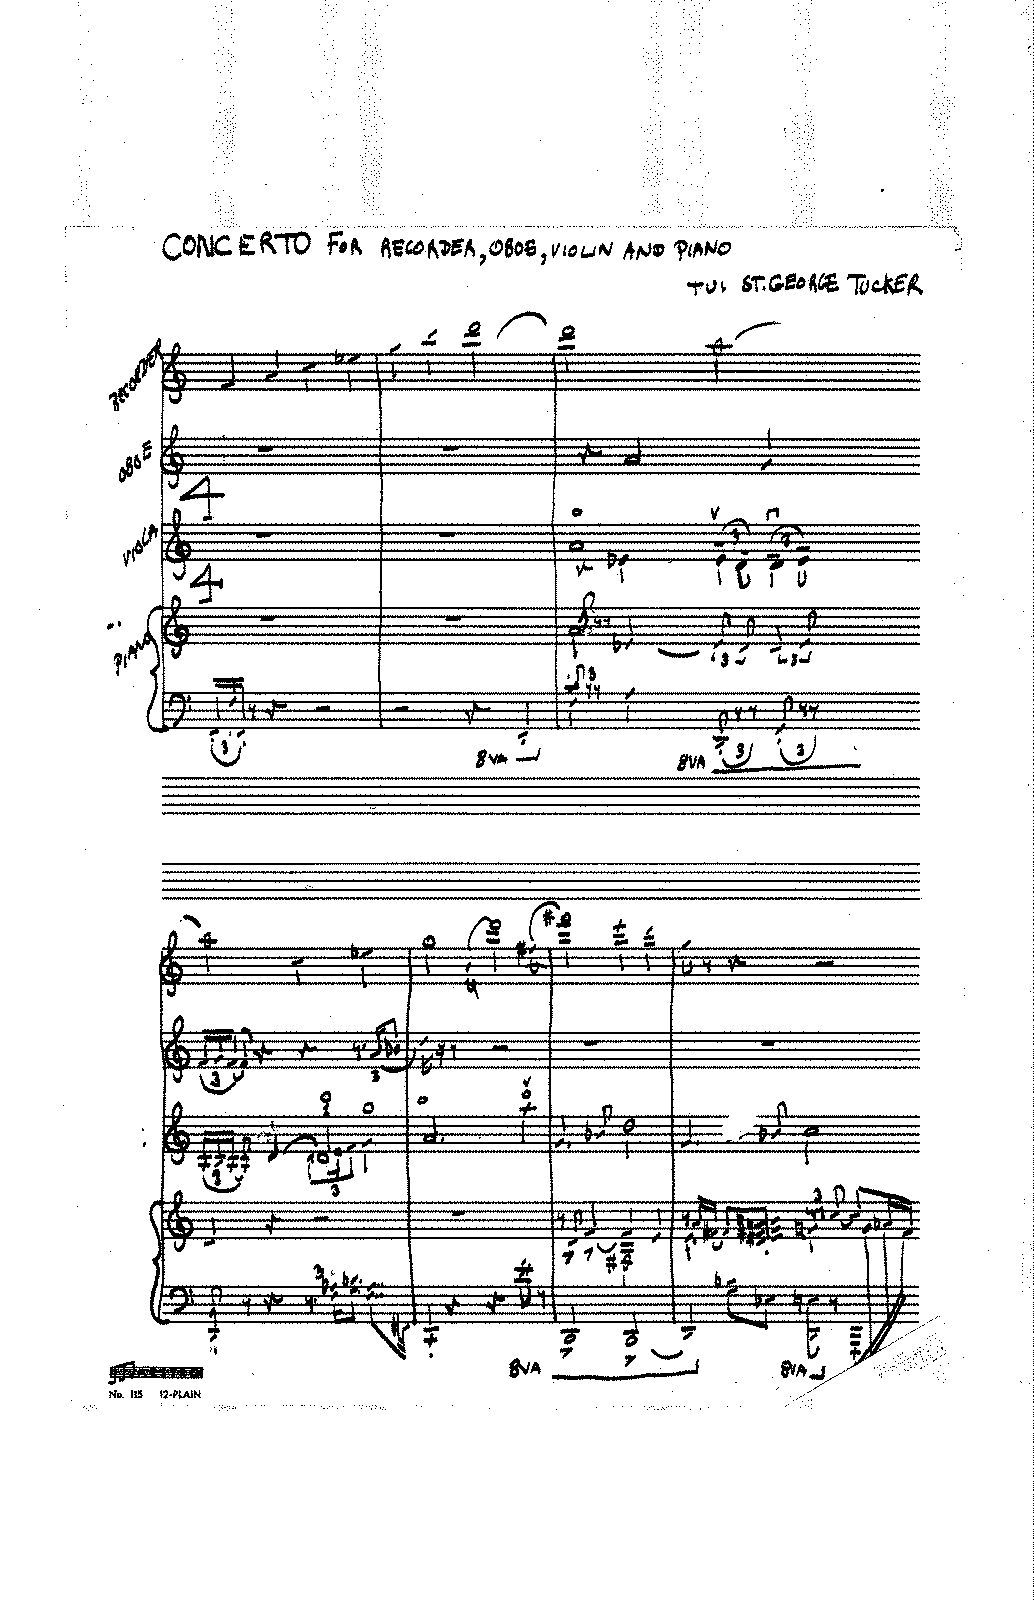 CONCERTO FOR RECORDER, OBOE, VIOLIN & PIANO.pdf